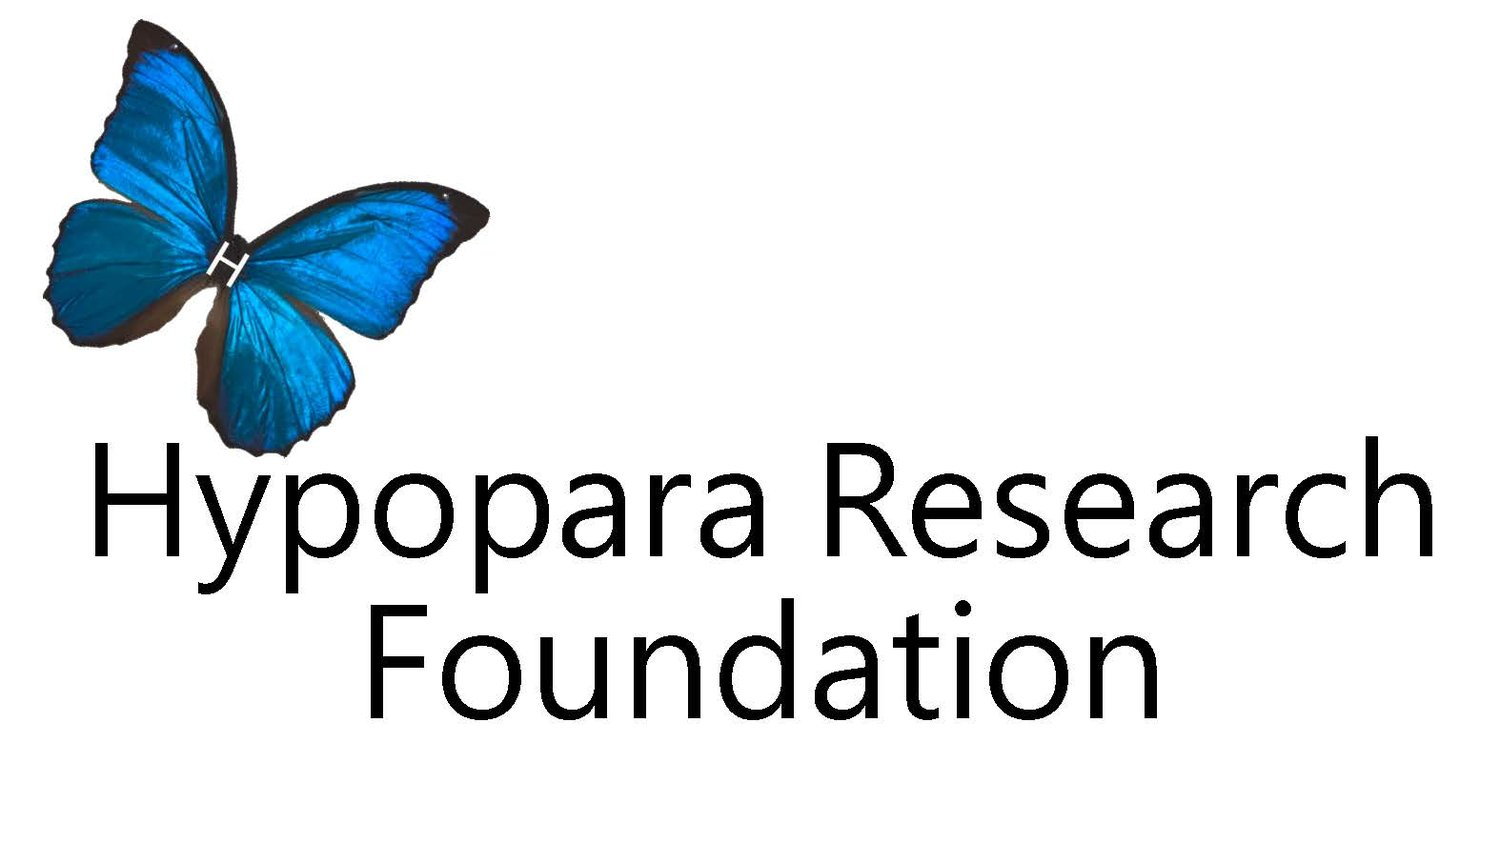 Hypopara Research Foundation